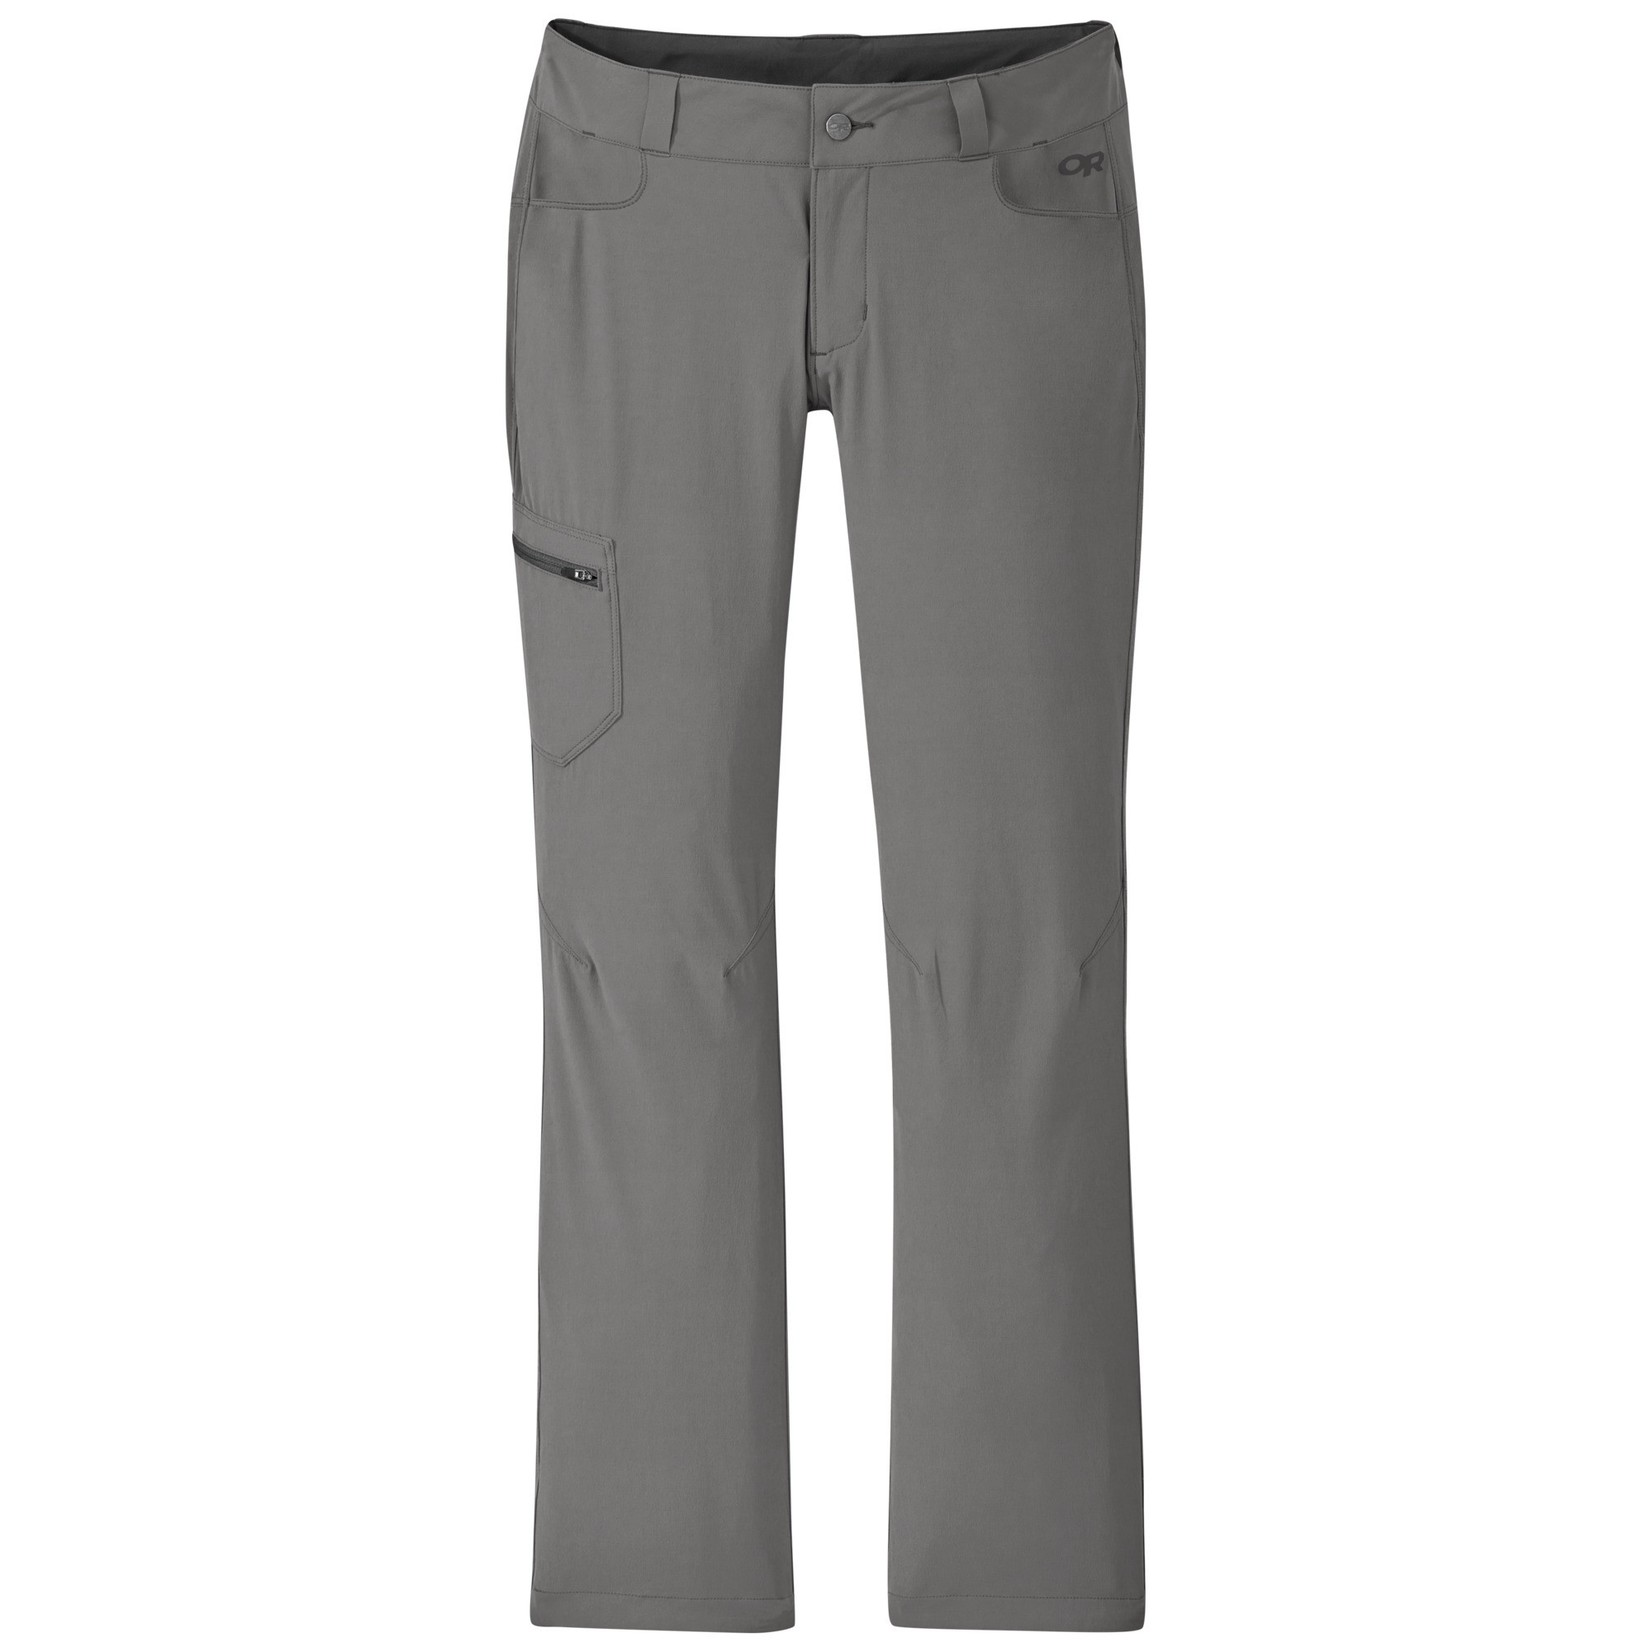 Outdoor Research Pantalons Outdoor Research Ferrosi - Femme